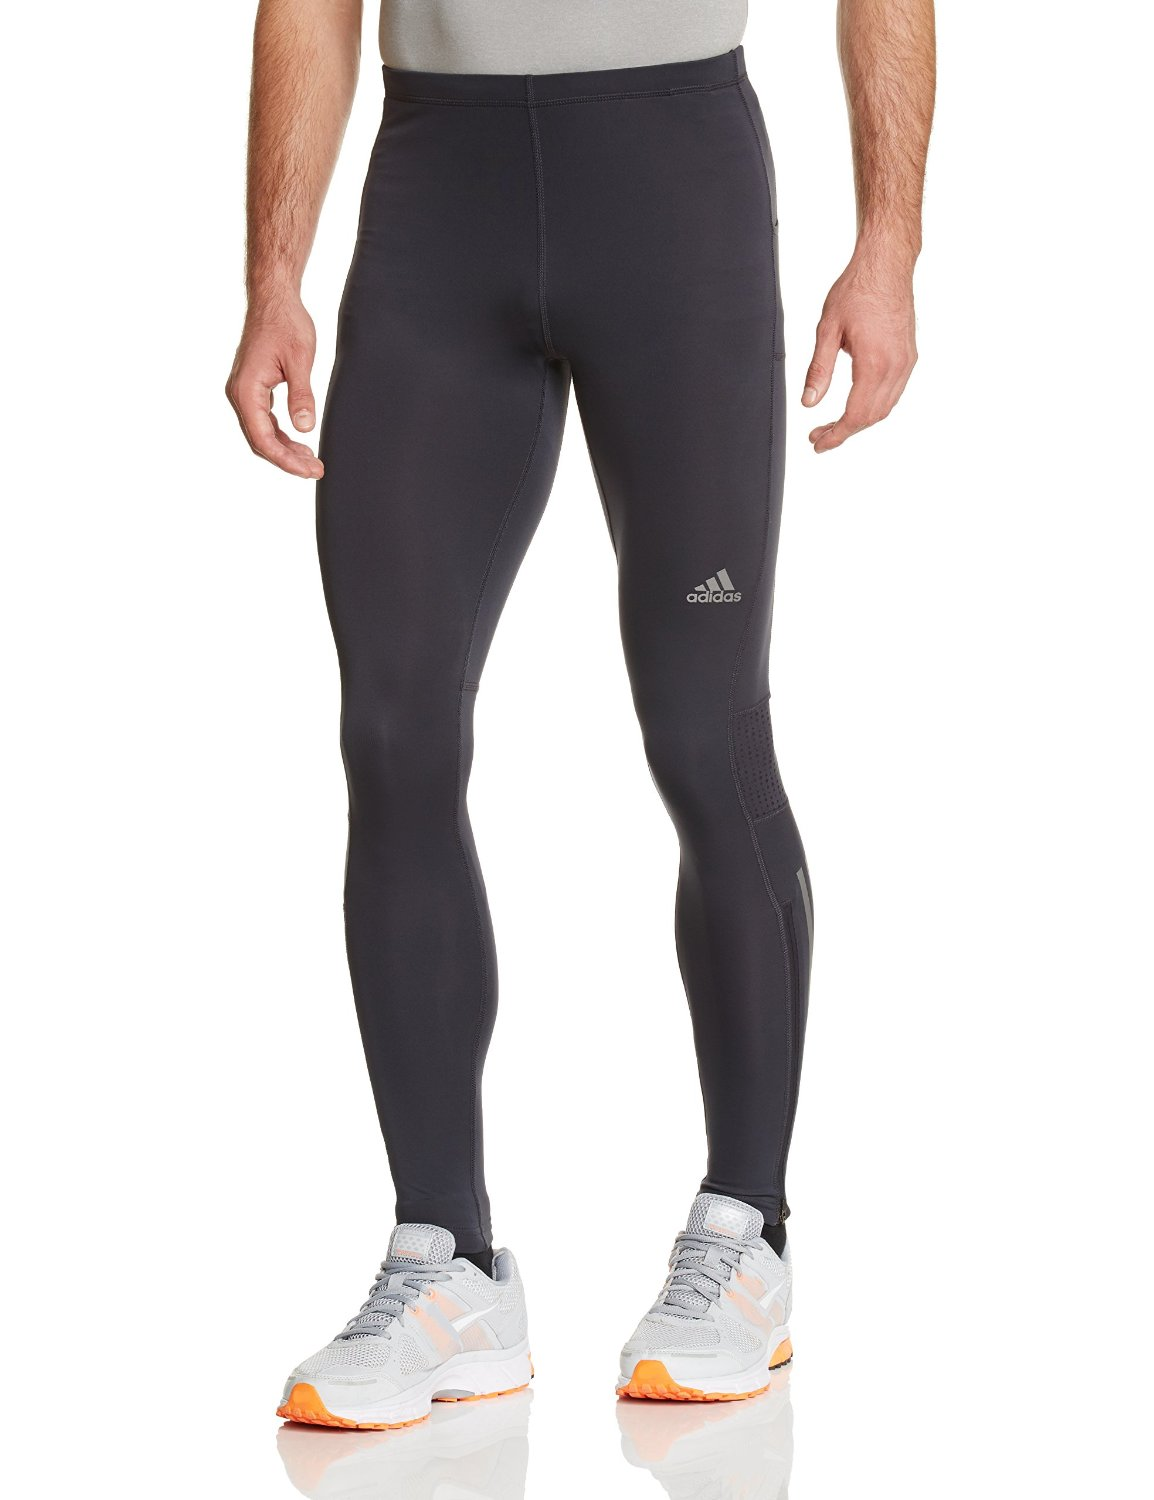 Enjoy the style and functionality of men's extended size athletic pants while working out at the gym, taking on the great outdoors or just relaxing at home. Browse the entire line of big and tall men's clothing at DICK'S Sporting Goods to complete your wardrobe.